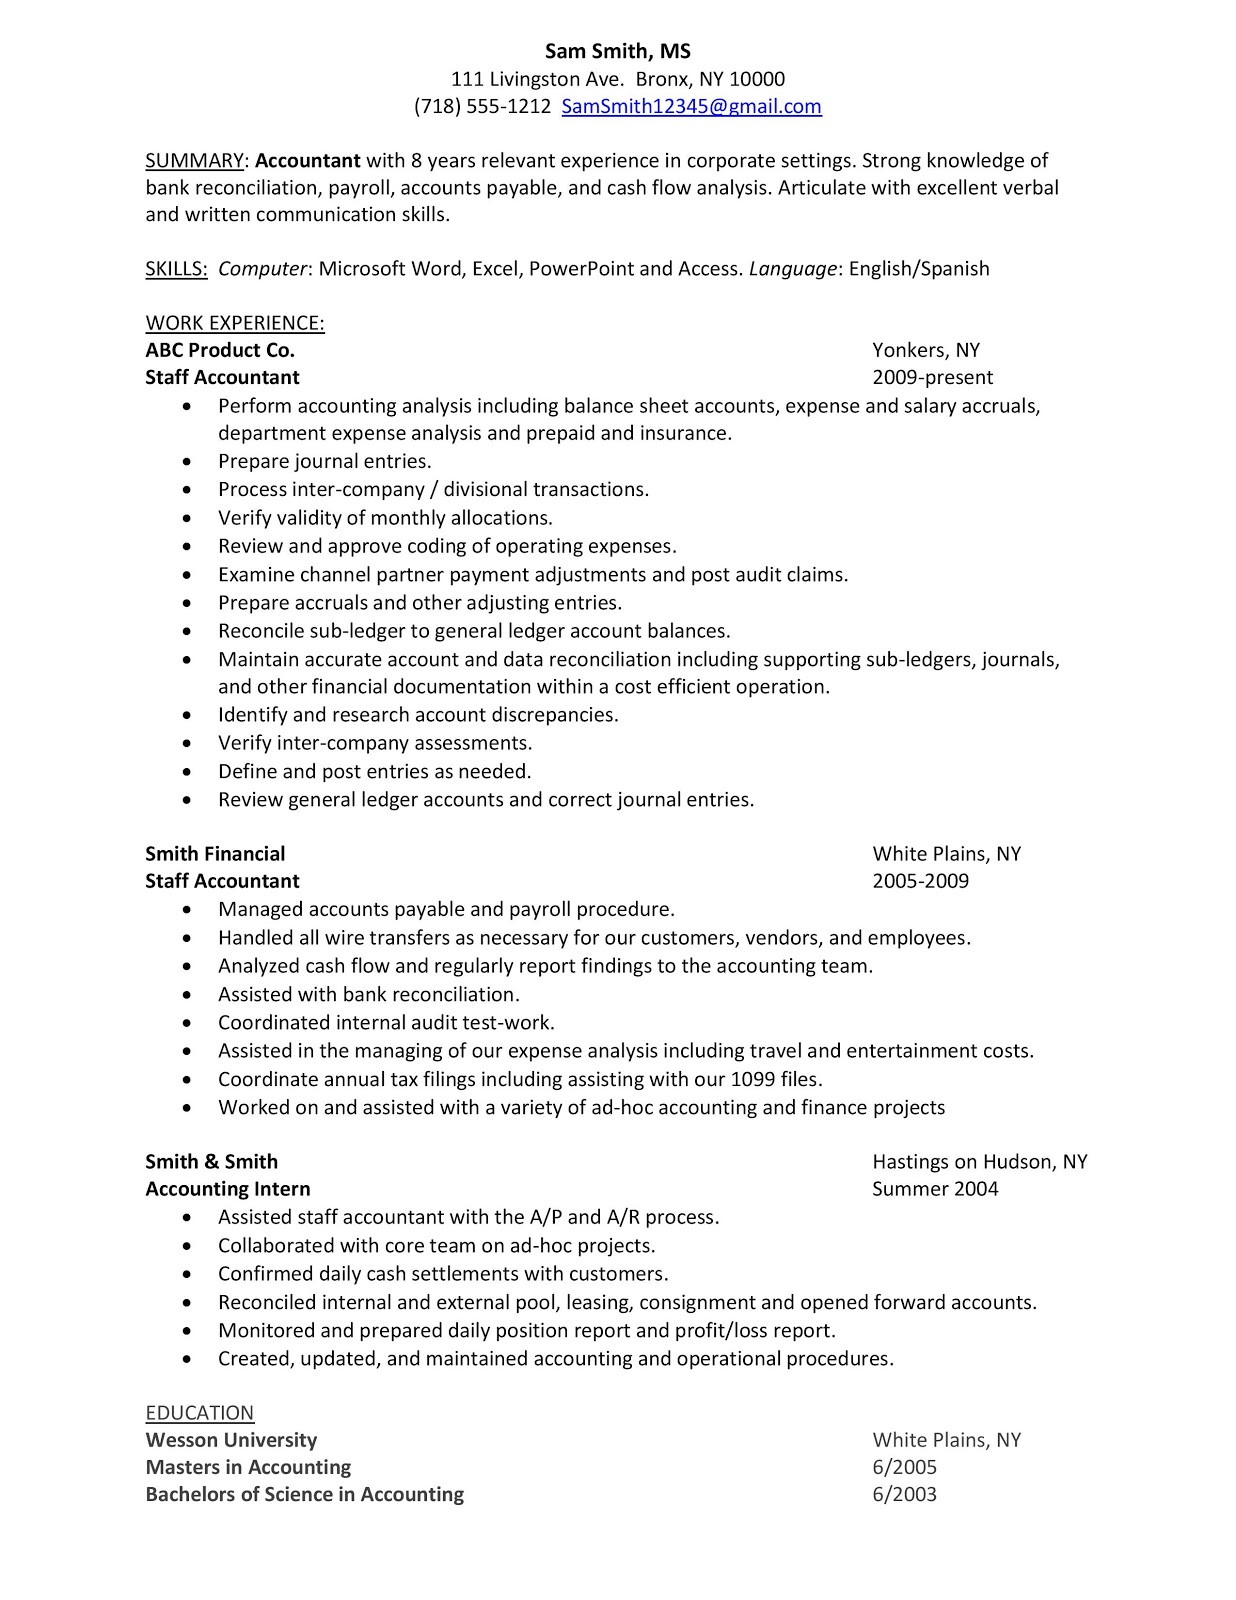 Wrestling Resume Sample Resume Staff Accountant Career Advice Pro Wrestling